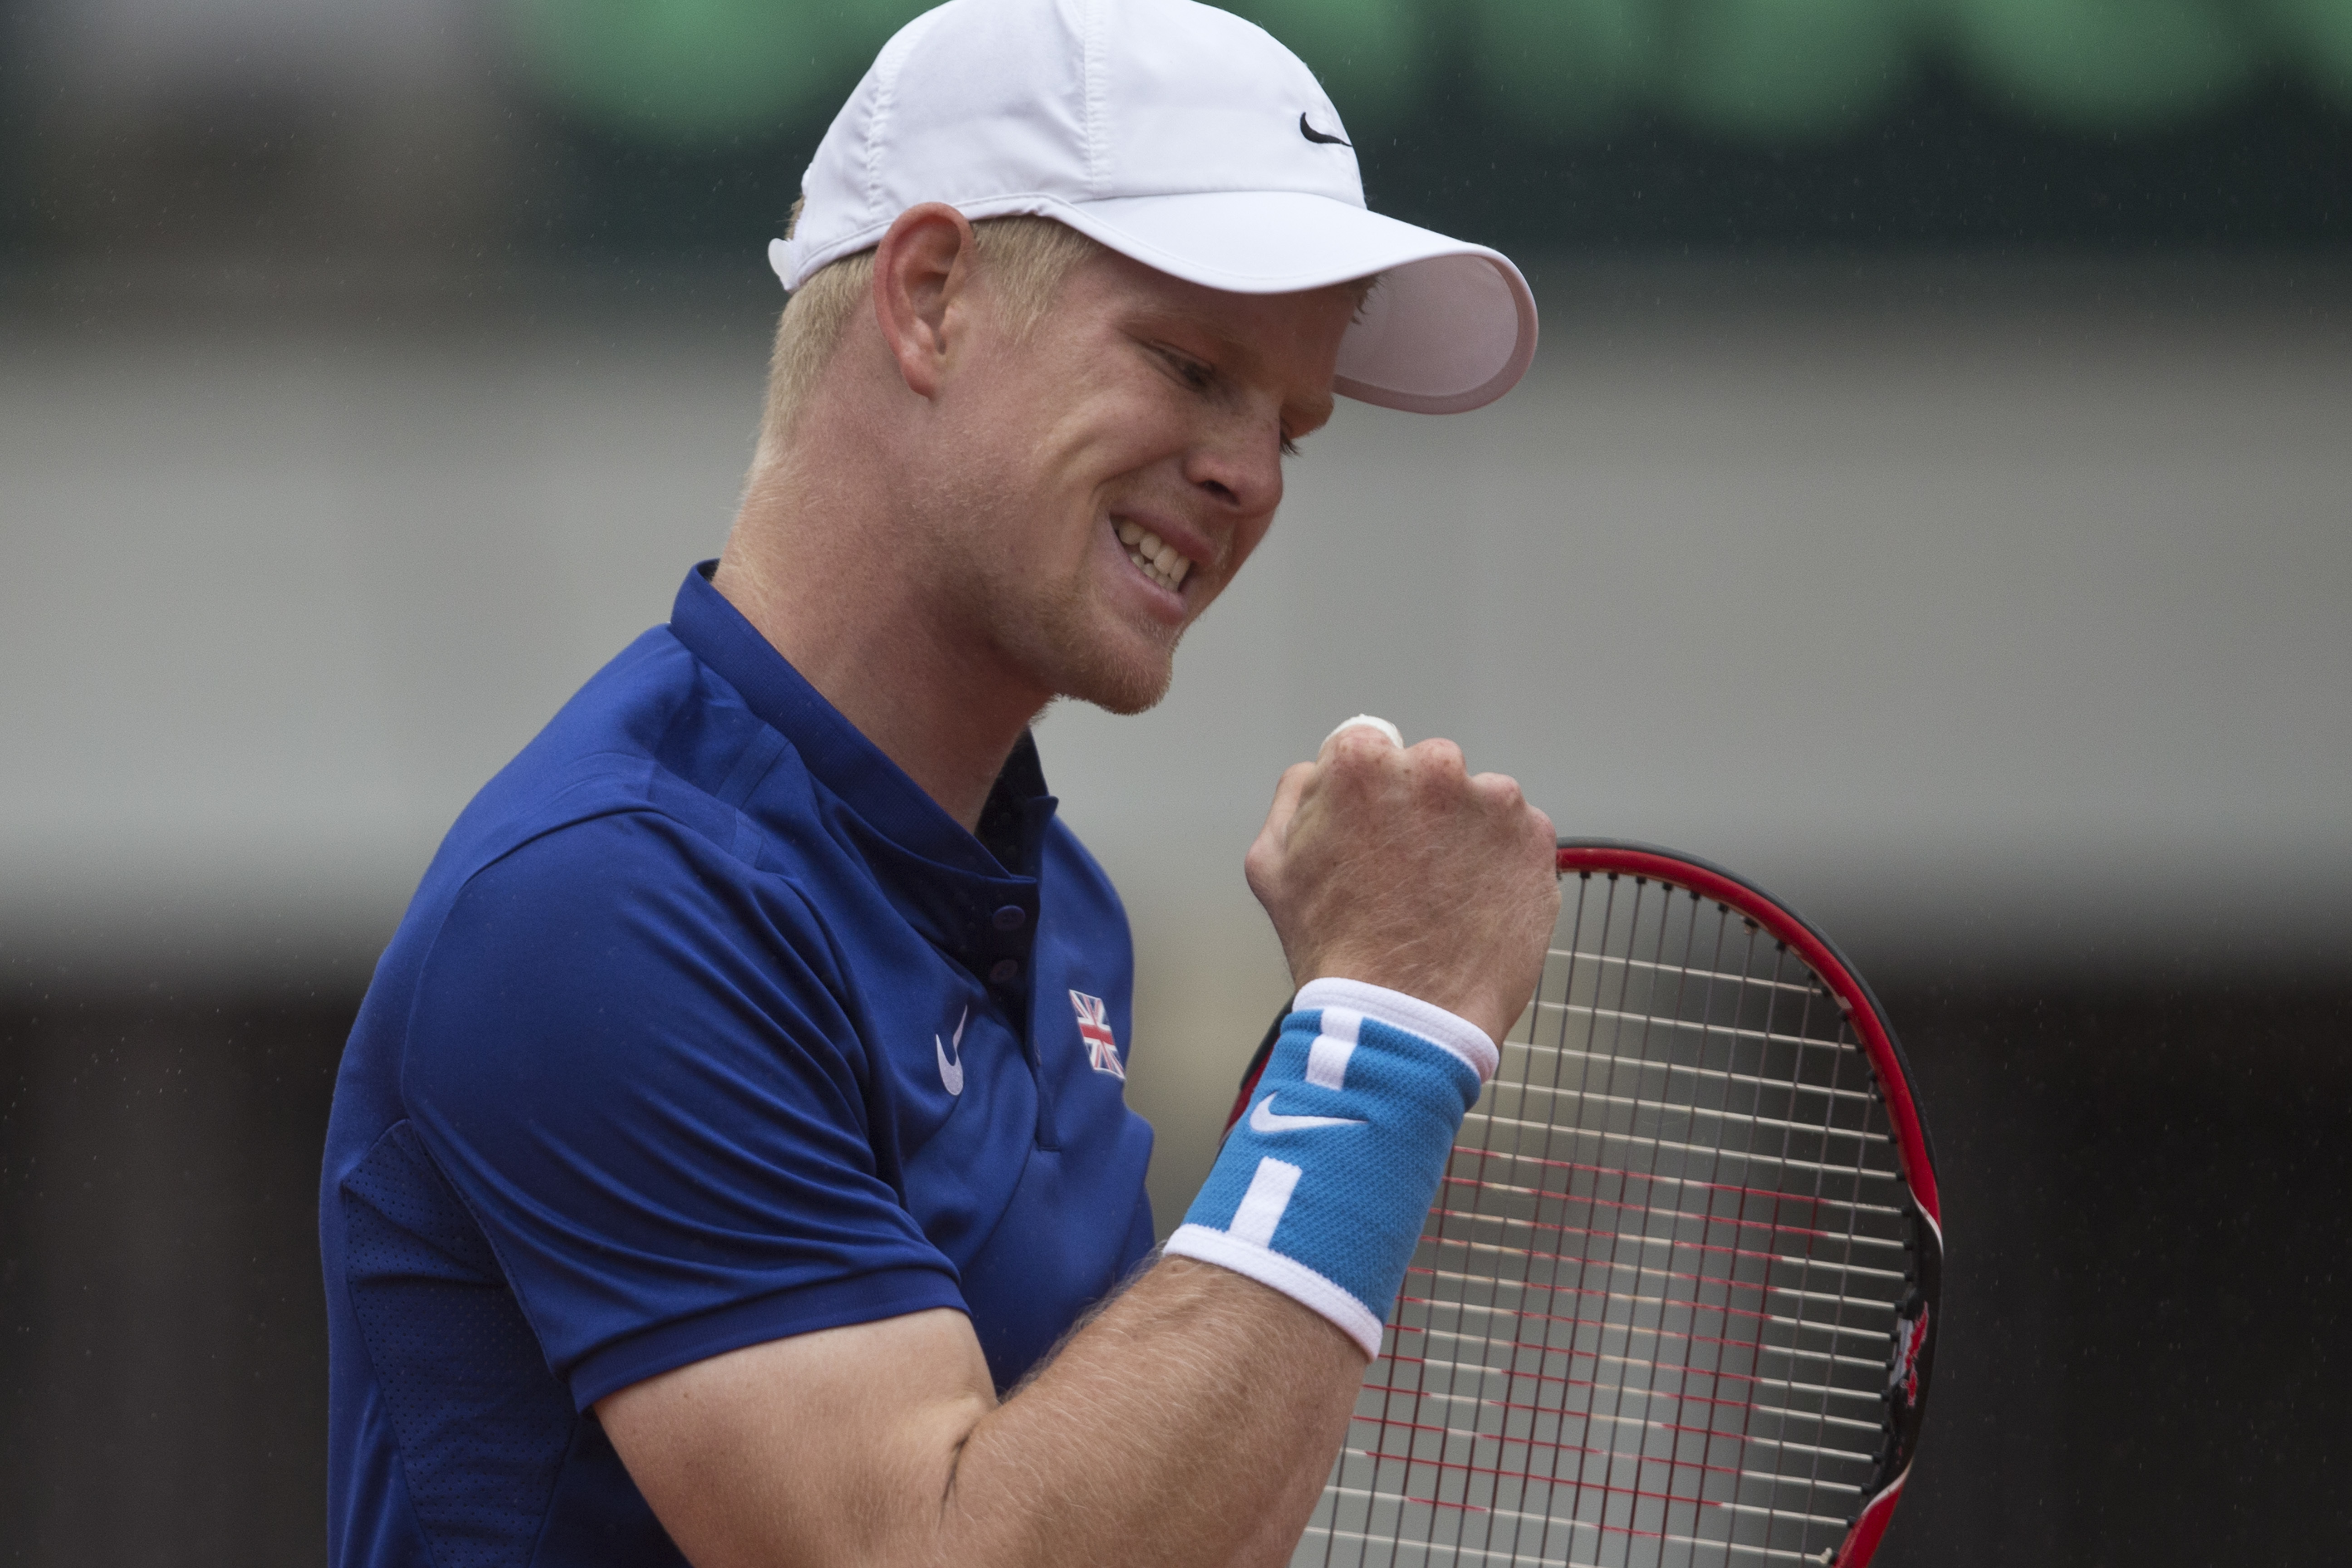 Britain's Kyle Edmund clenches his fist after having won a point against Serbia's Dusan Lajovic during their Davis Cup quarterfinal tennis match in Belgrade, Serbia, Sunday, July 17, 2016. (AP Photo/Marko Drobnjakovic)